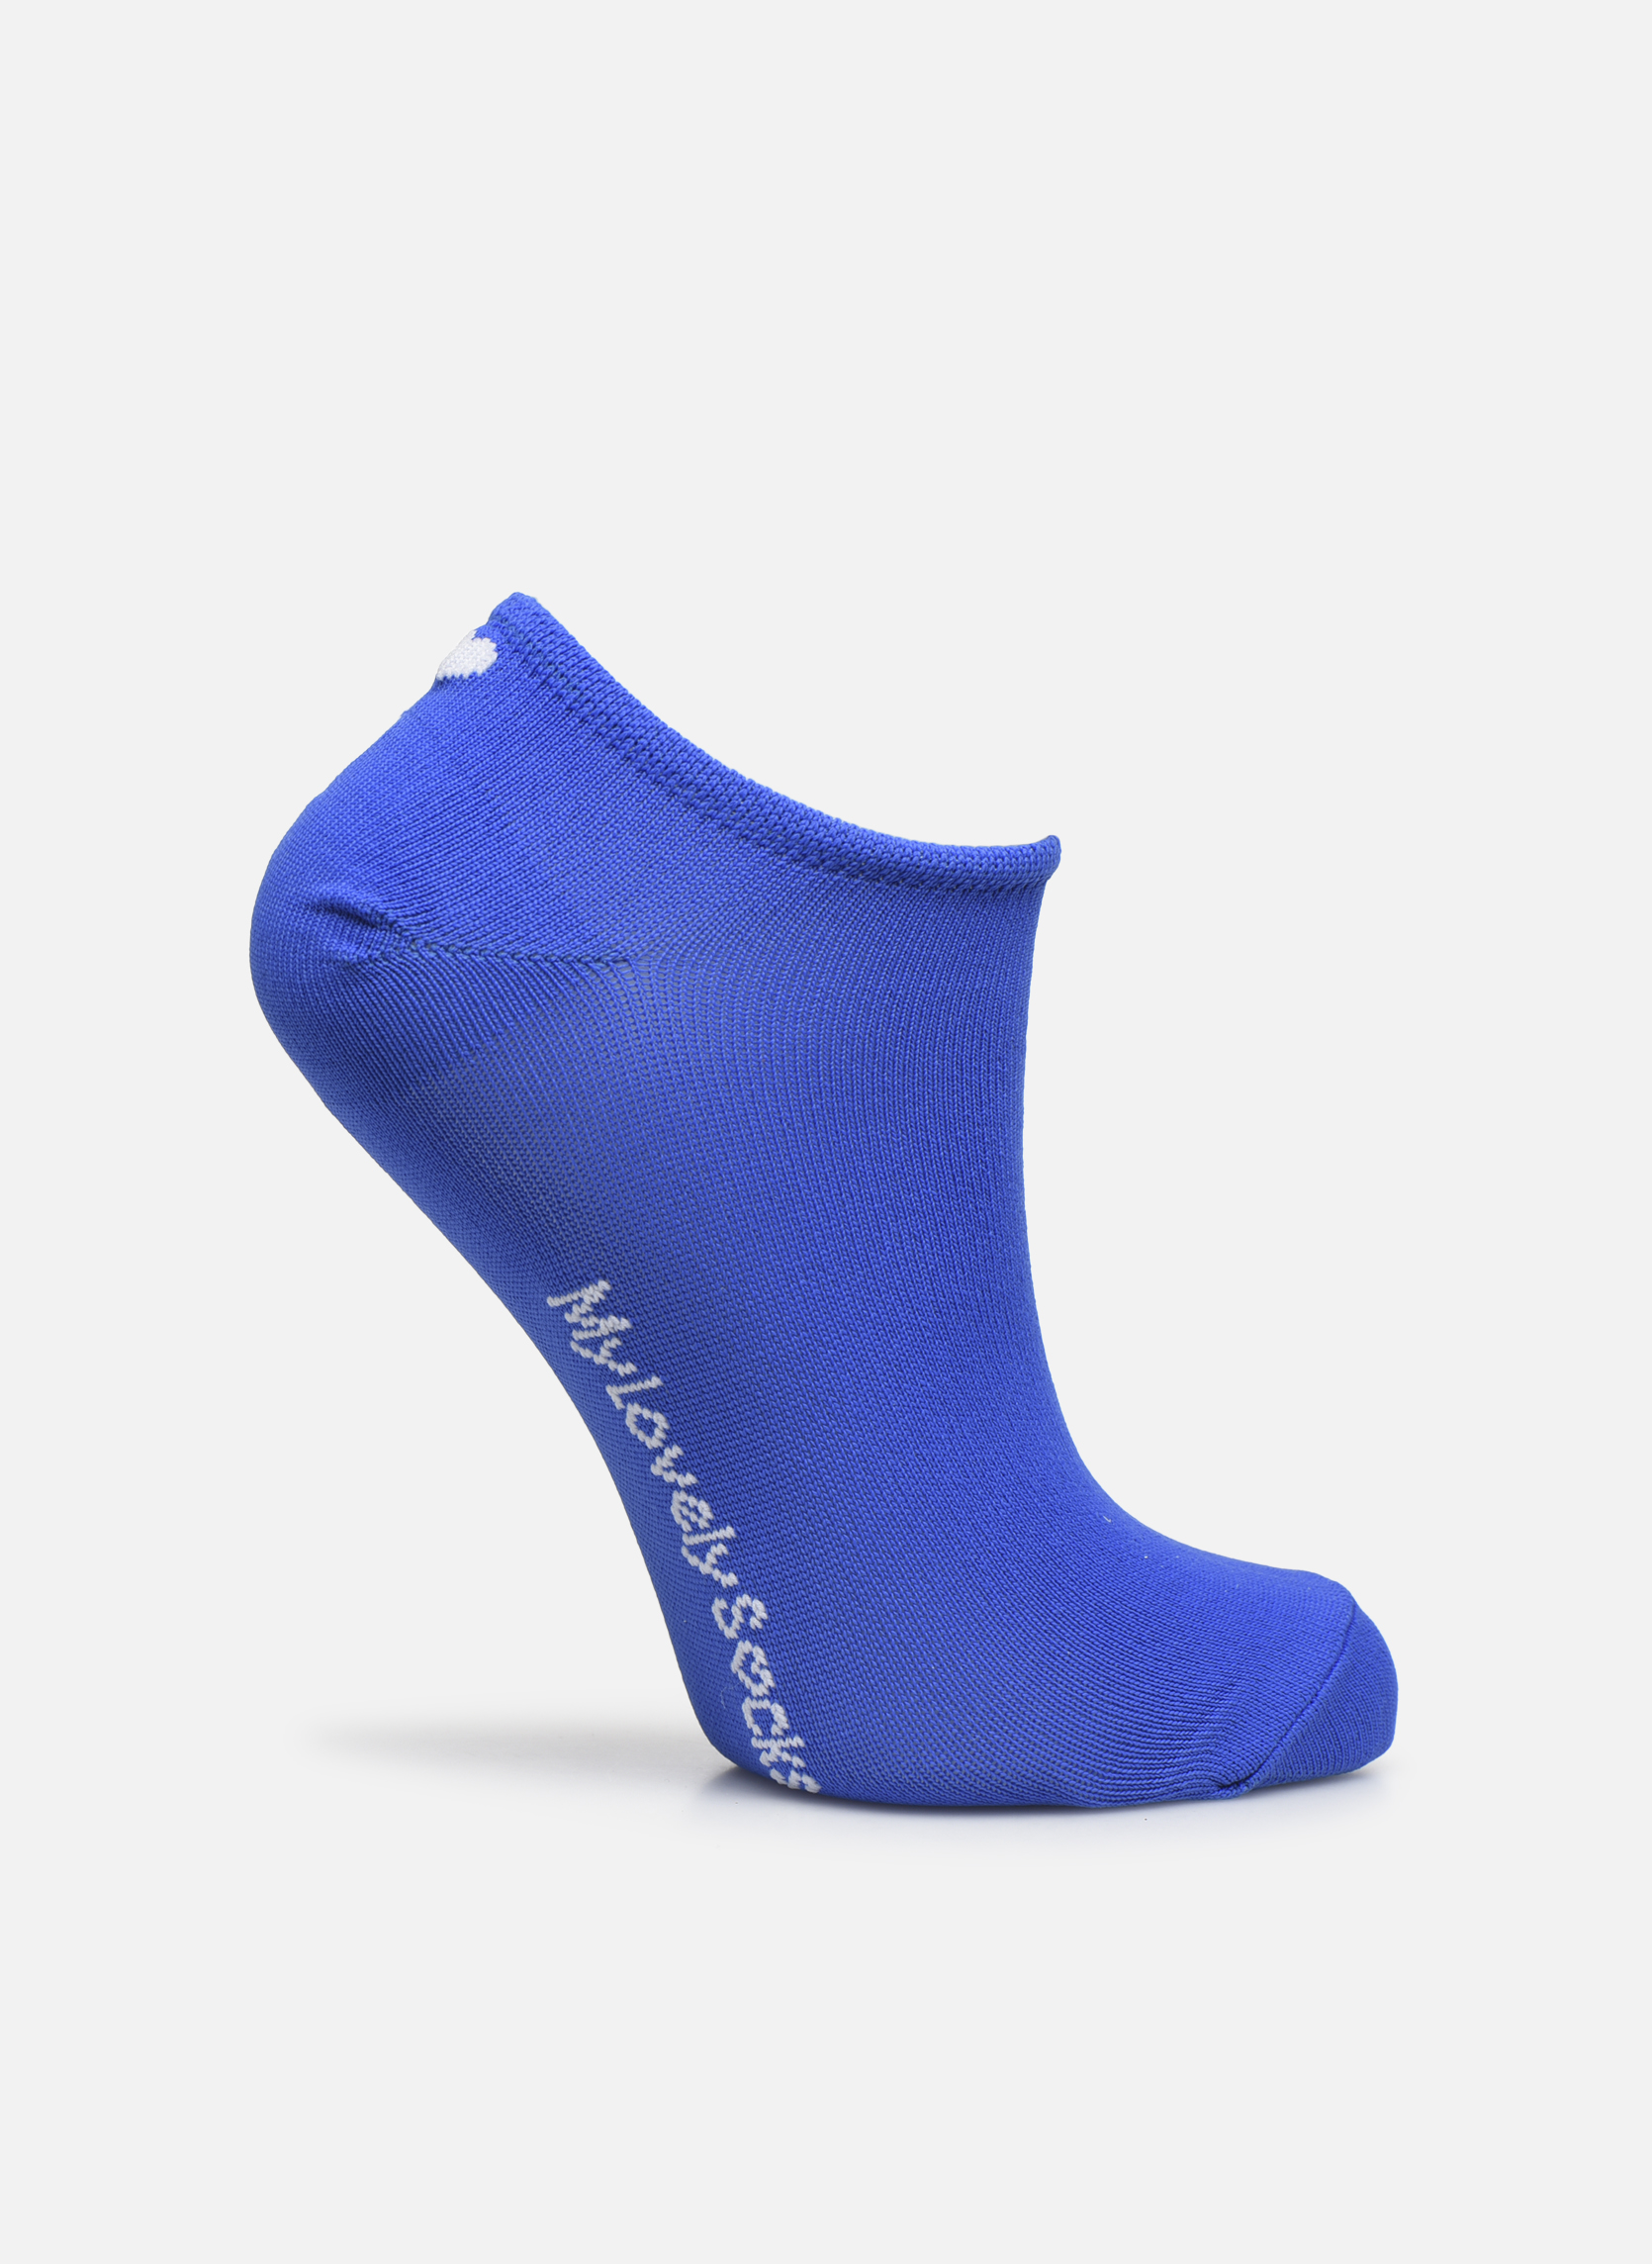 Chaussettes Invisibles Fluo SACHA